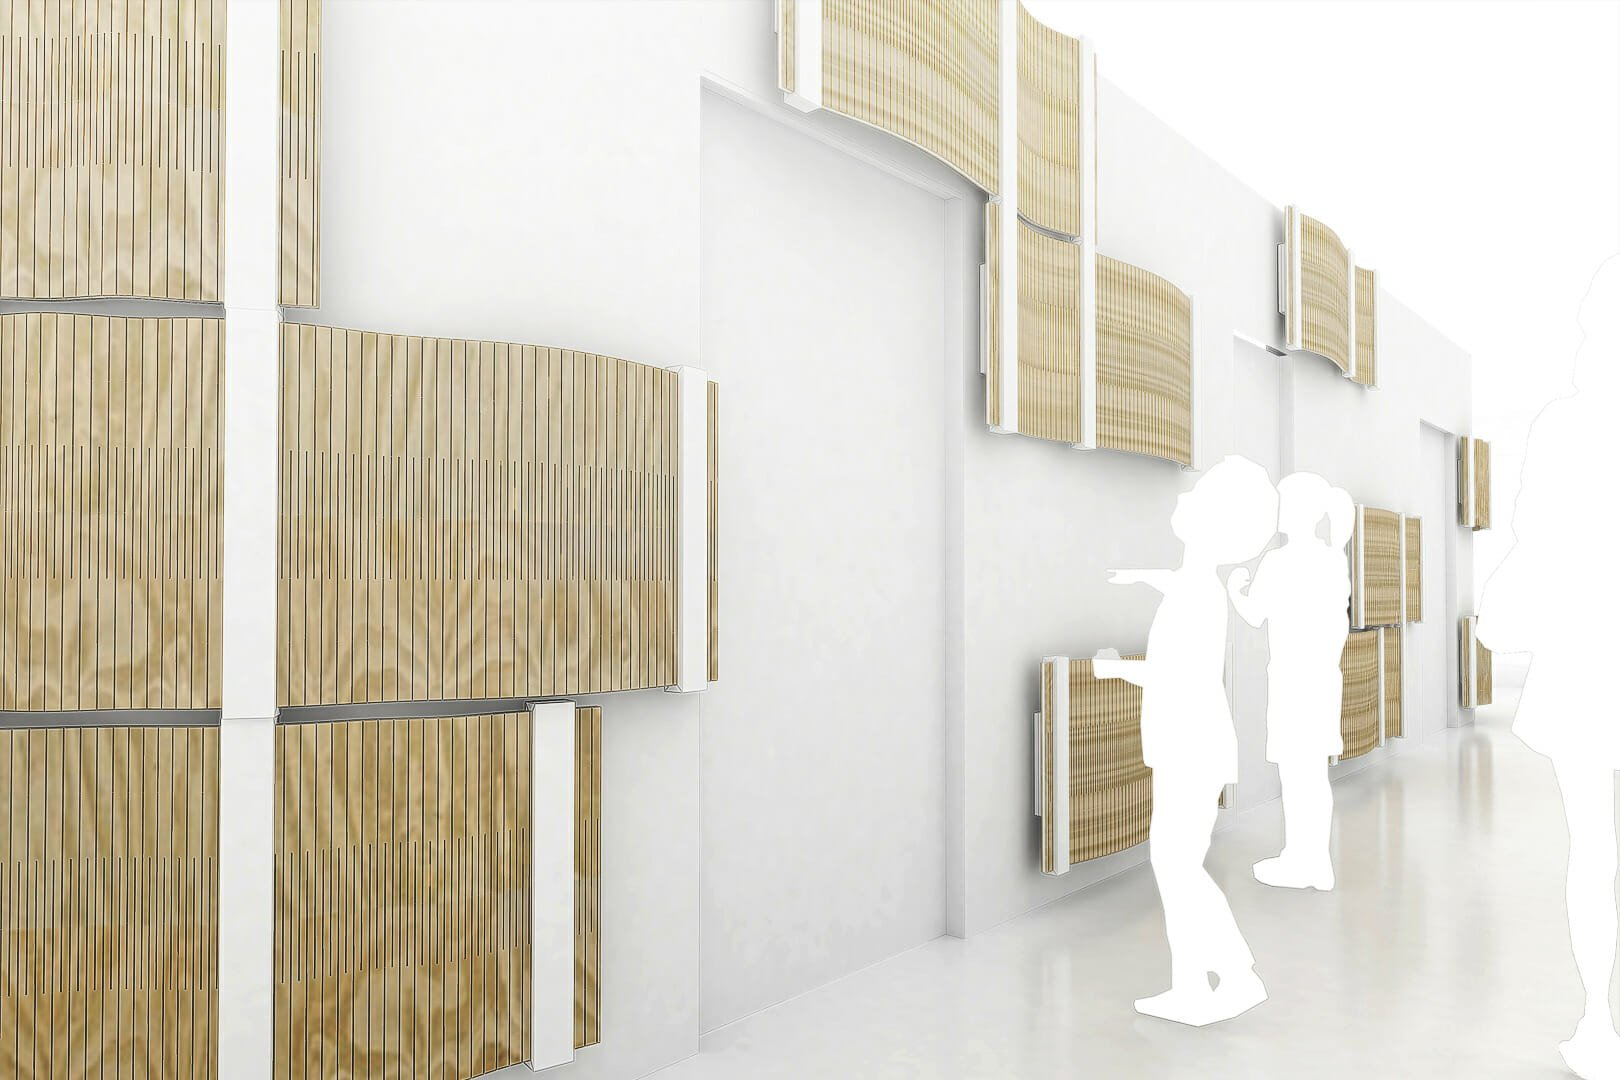 acoustic wood showing like fish in entrance lobby by architecture rendering